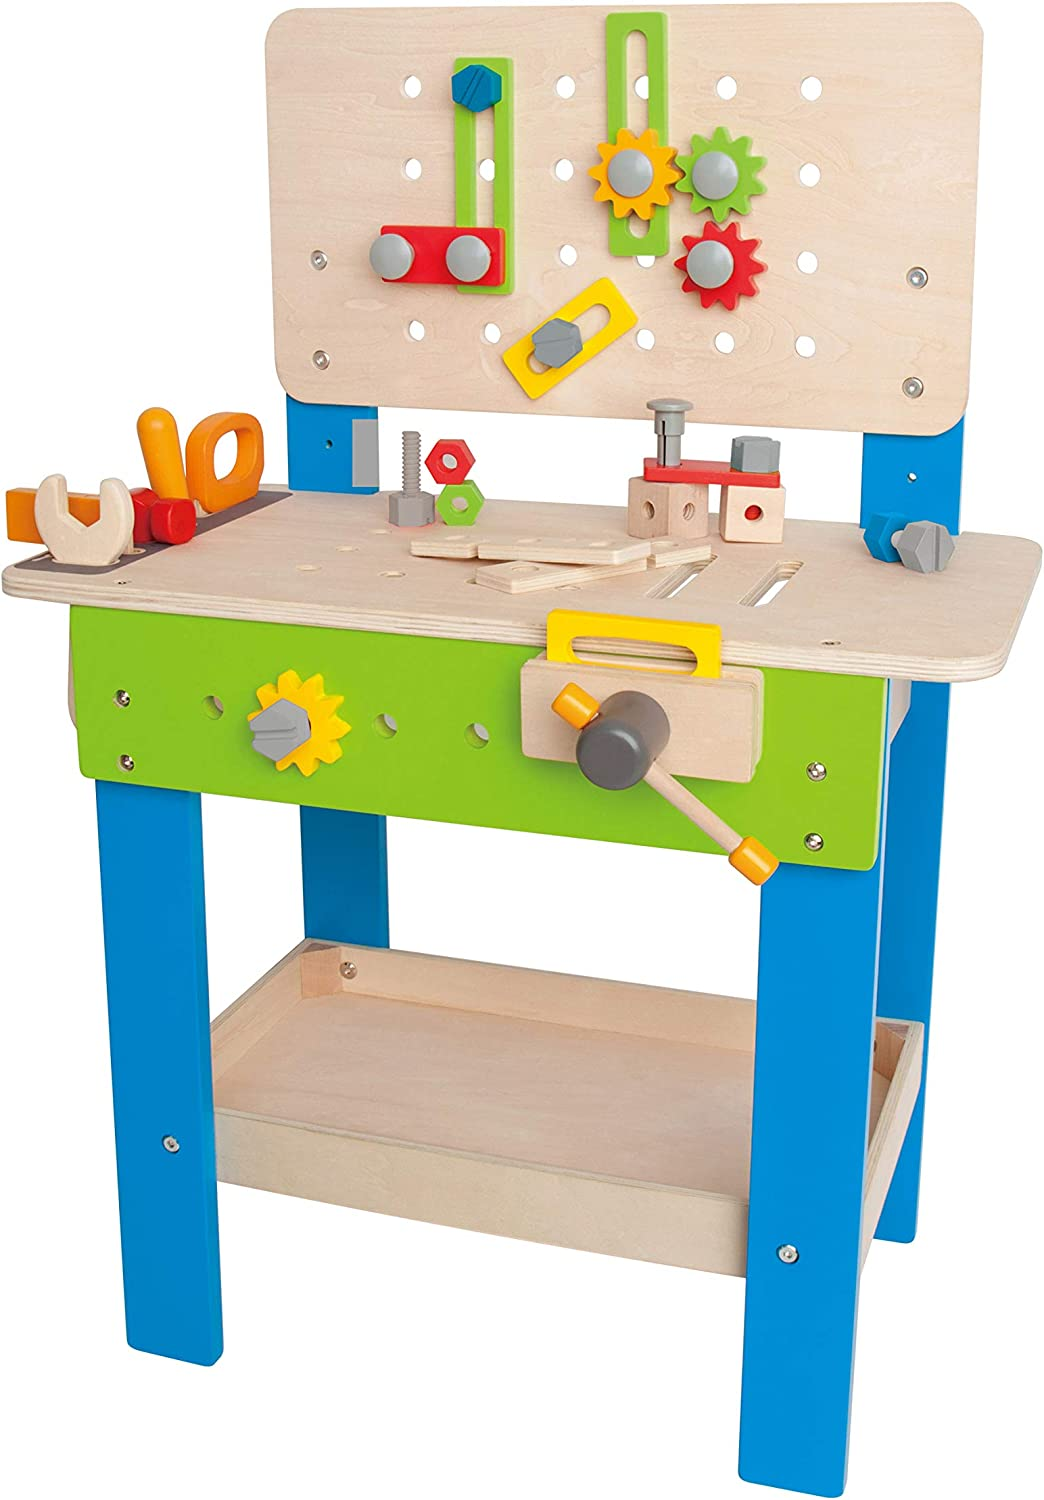 Top 8 Best Workbenches For Kids (2020 Reviews & Buying Guide) 1